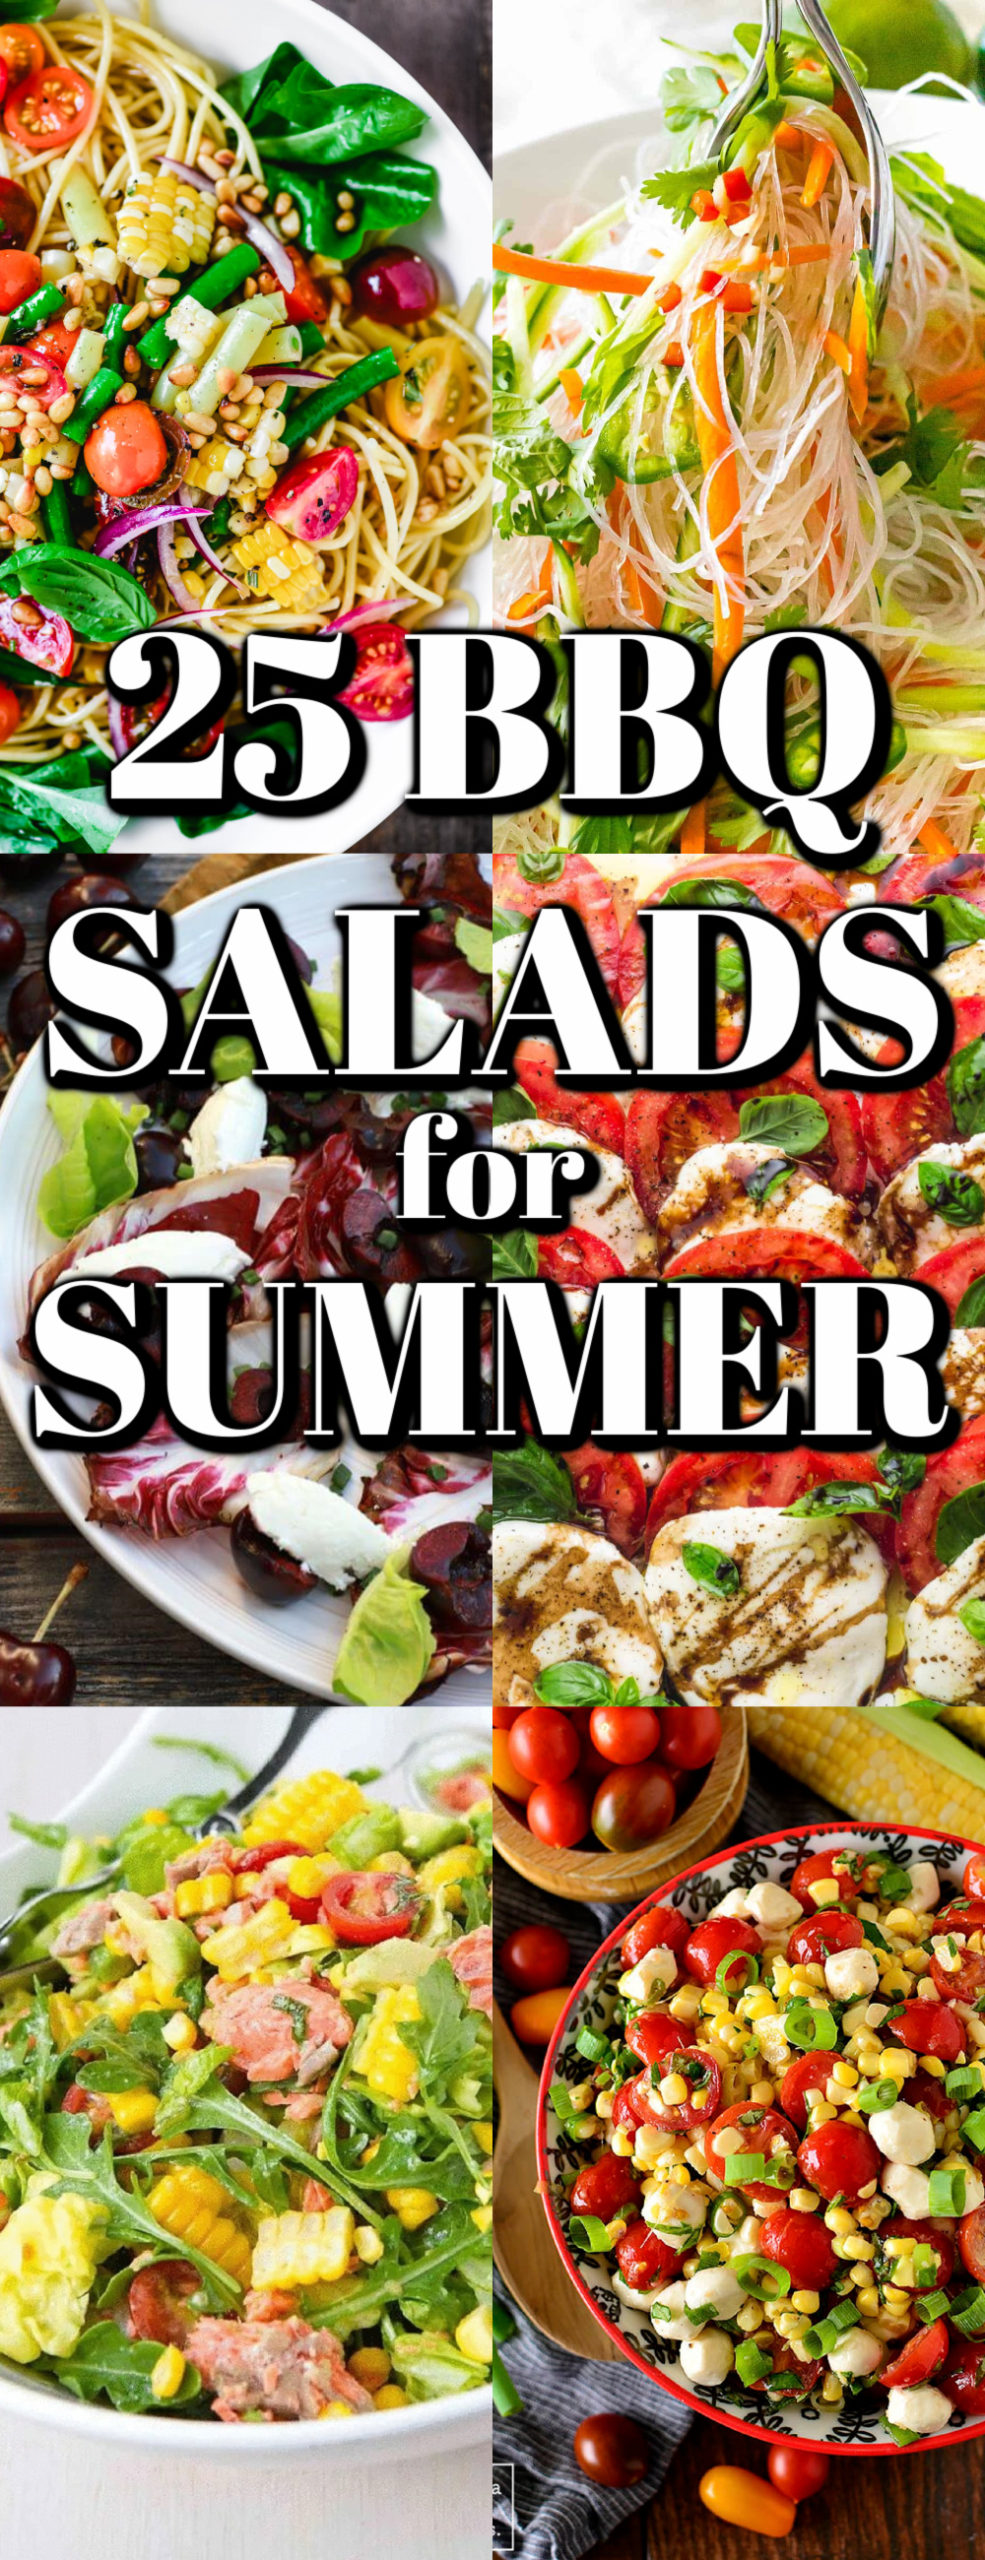 These 25 BBQ Salads for Summer recipes are perfect for any summer gather, picnic or party. There are some healthy choices, but they are all fantastic dishes!